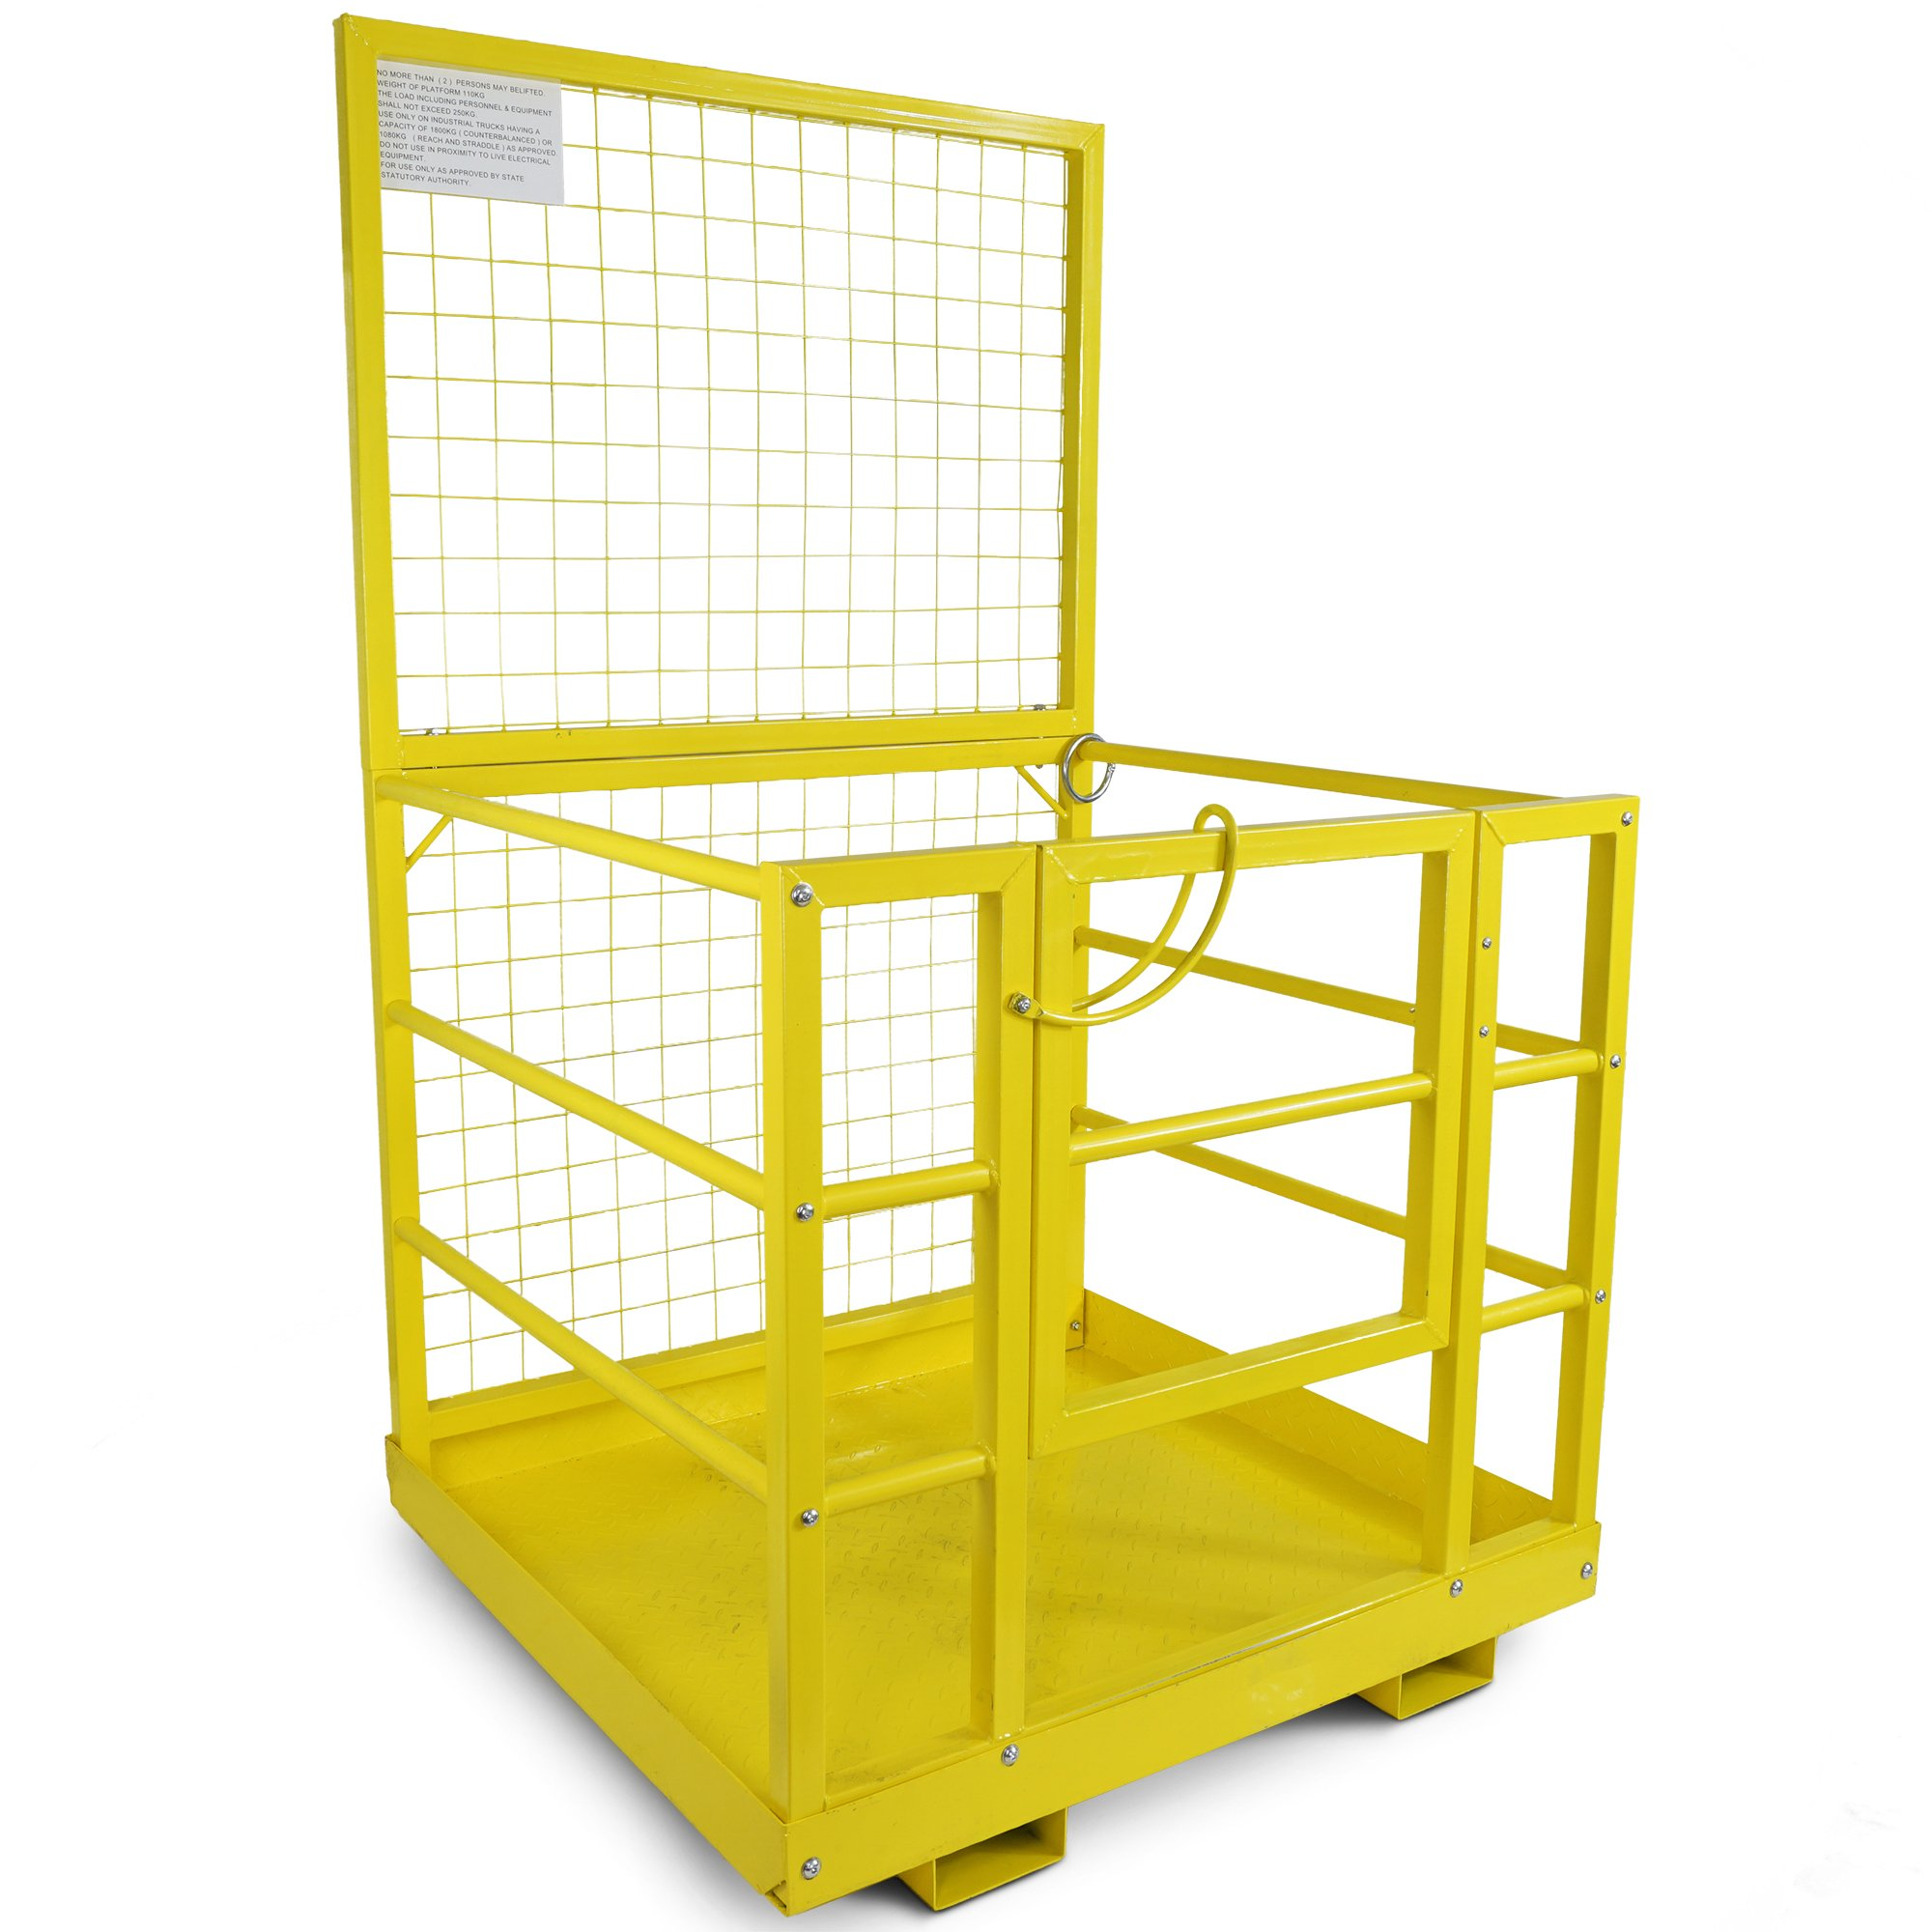 Forklift Safety Cage Work Platform Lift Basket Aerial Fence Rails Yellow 2 man by Titan Attachments (Image #1)